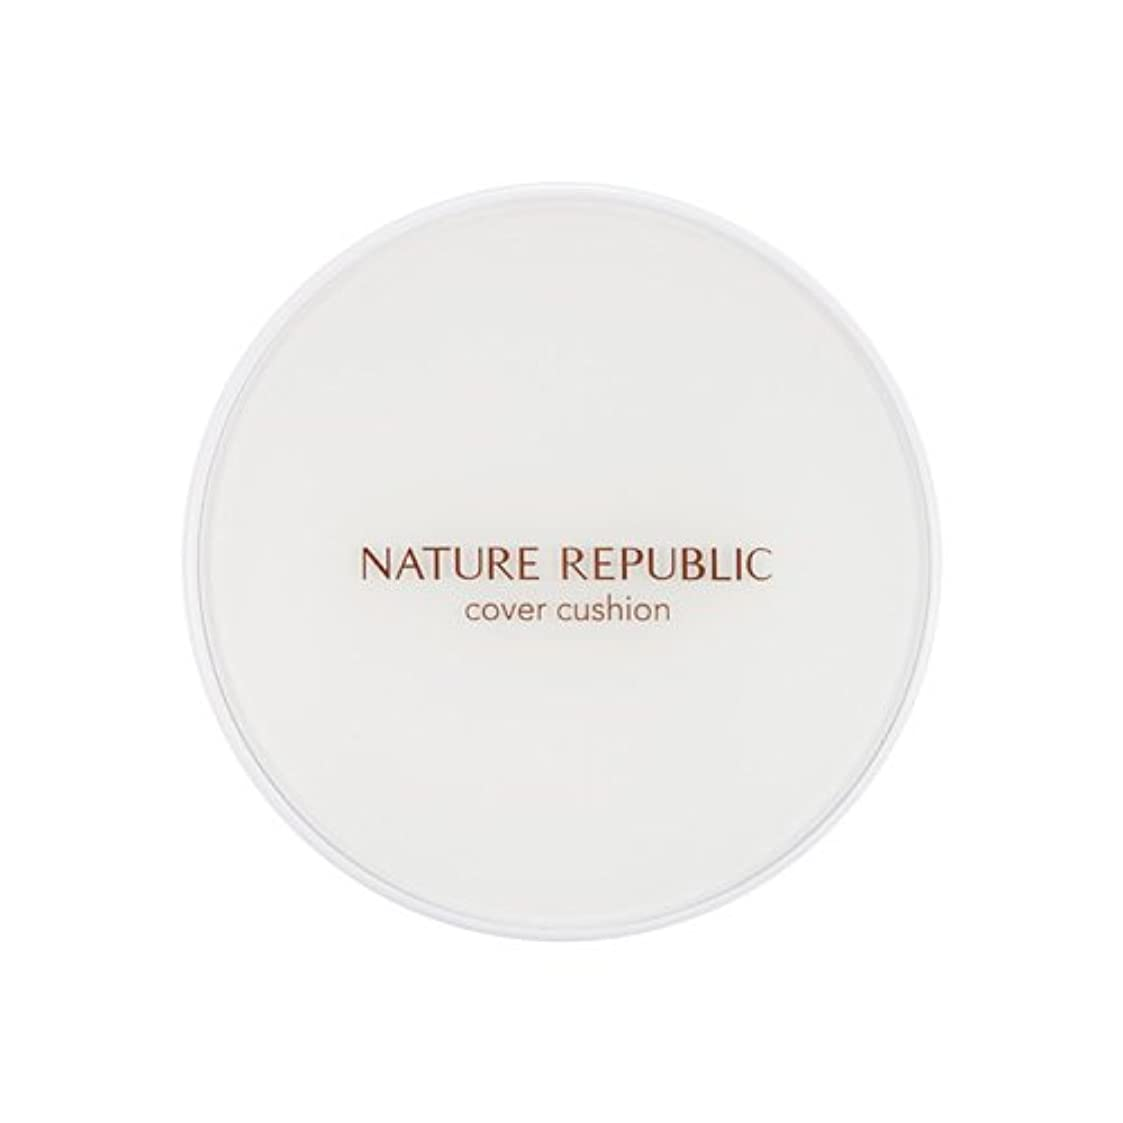 ズボンリゾートテーマ[Outlet] NATURE REPUBLIC Nature Origin Cover Cushion (01 Light beige) (SPF50+ PA+++) [並行輸入品]